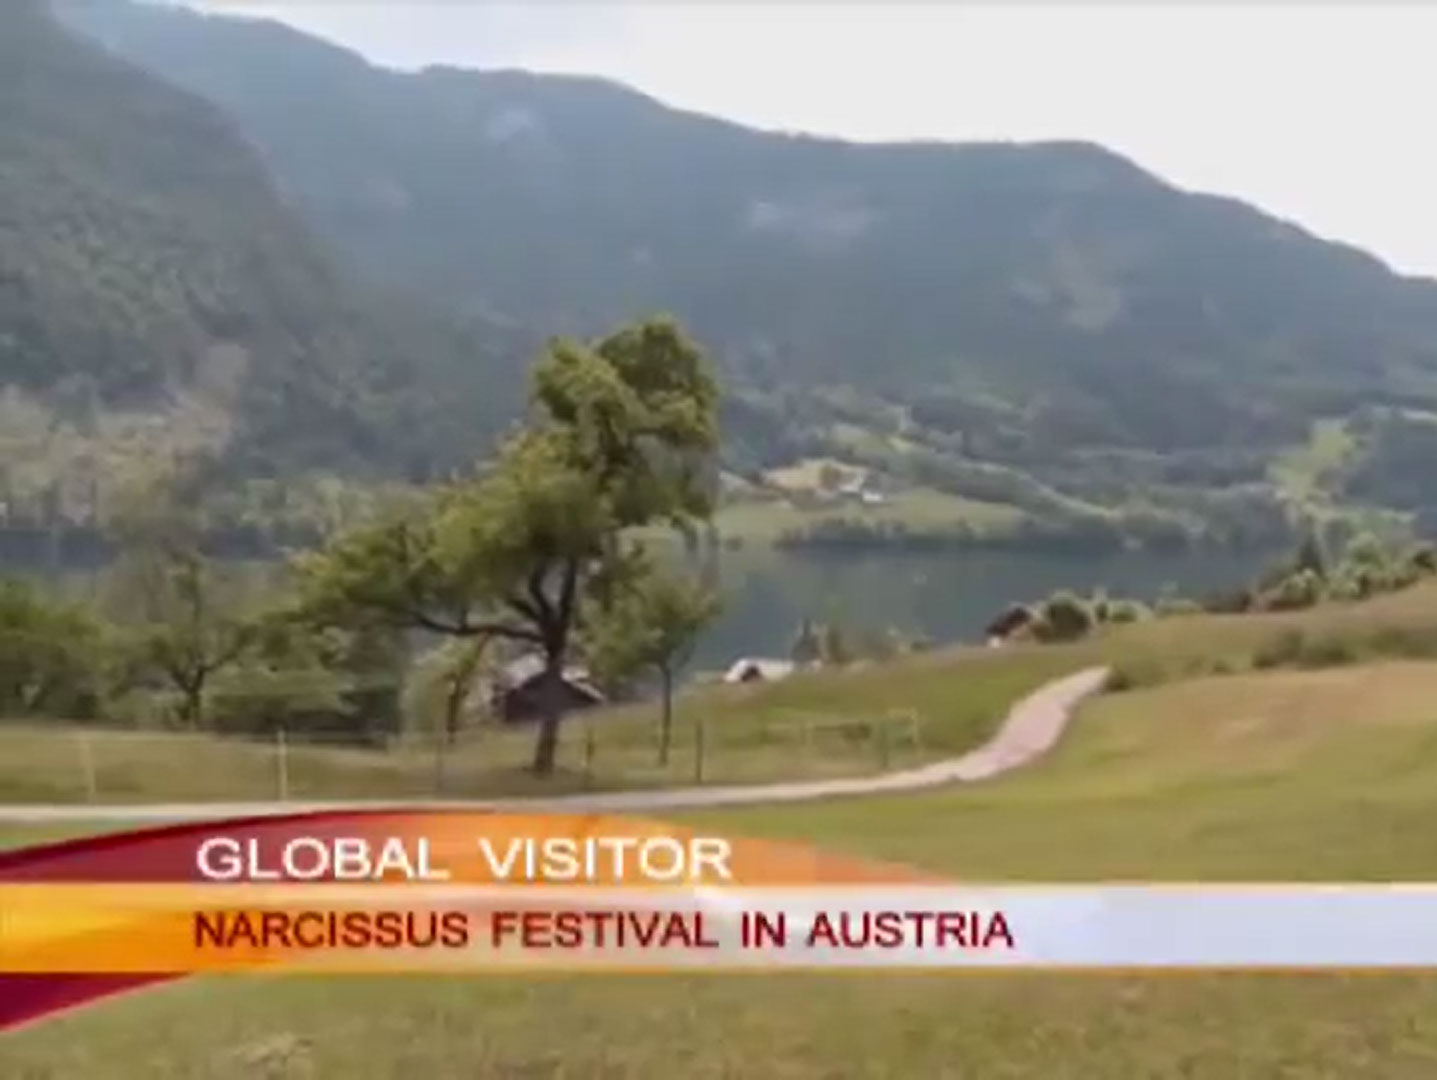 Chinese state Television visited Narzissenfest